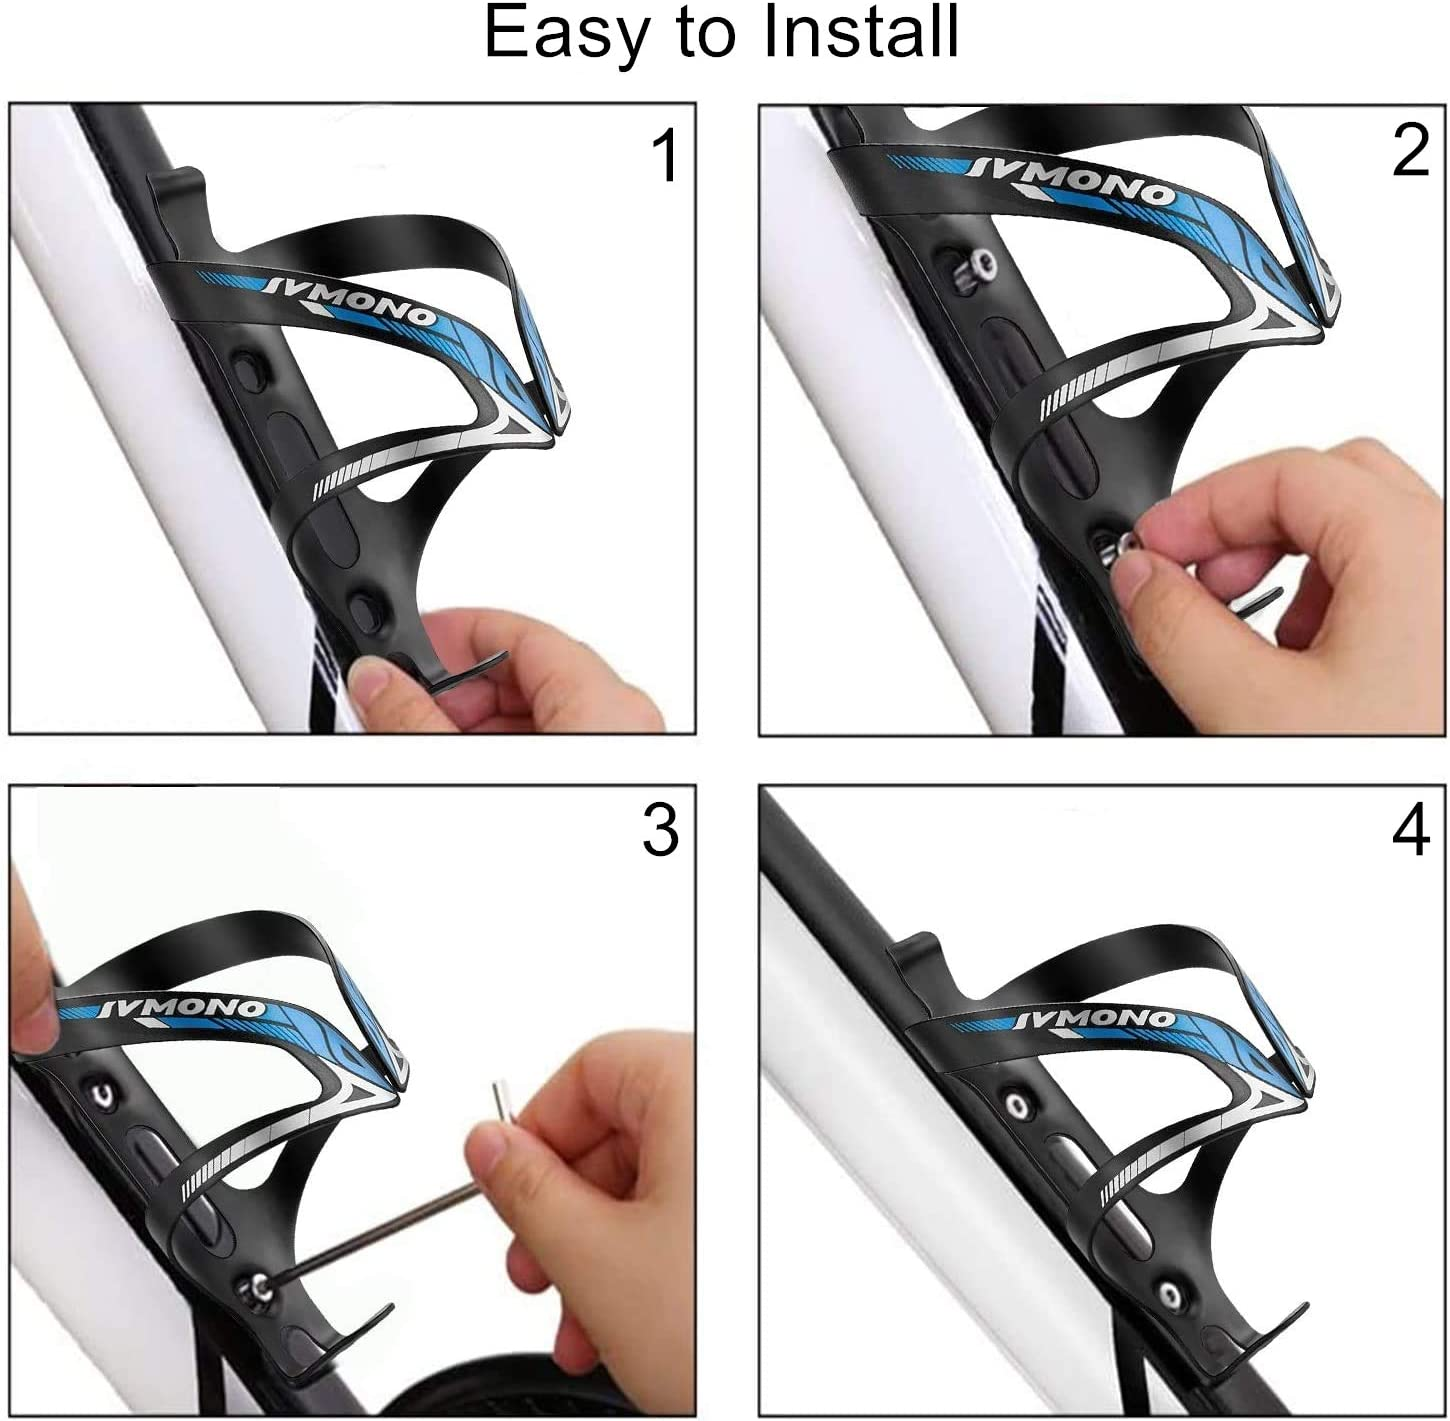 Quick and Easy to Install Great for Road Ultra Lightweight Aluminium Alloy Bicycle Water Bottle Cage Bike Bottle Holder Mountain and Kids Bikes No Lost Bottles